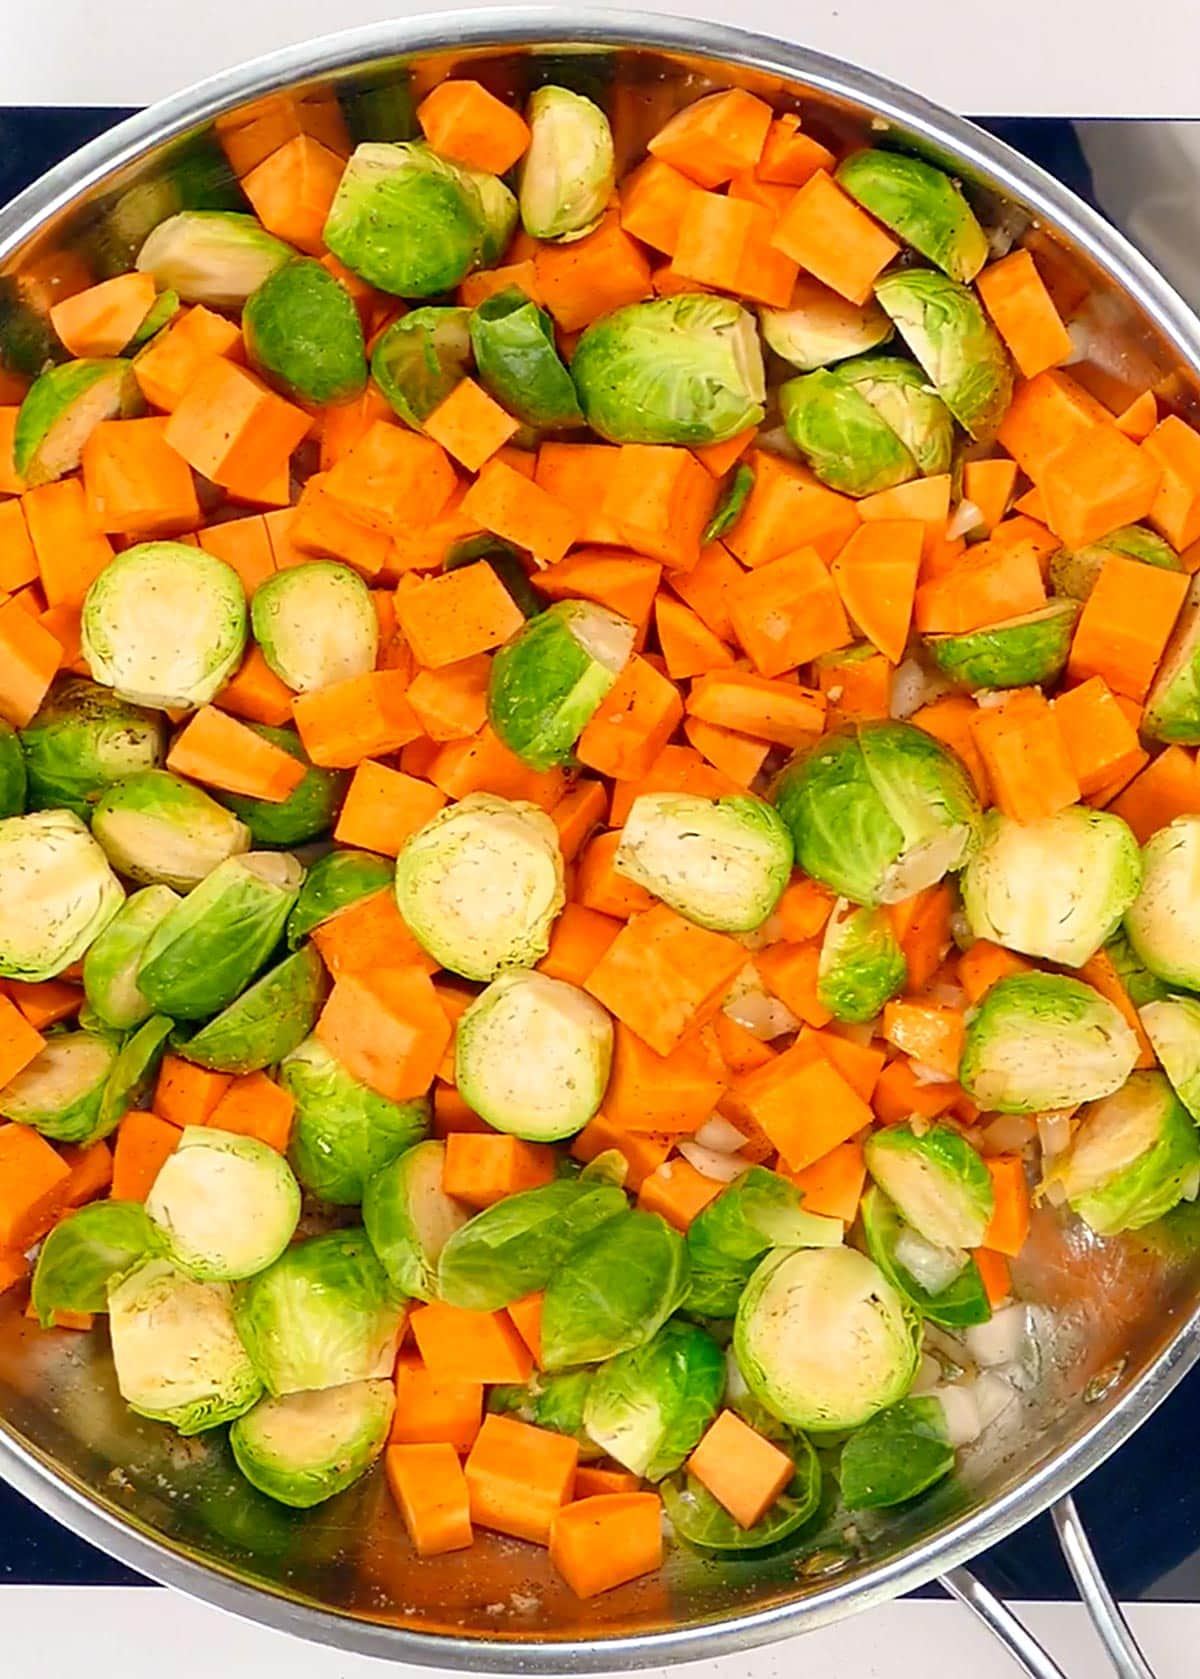 Roasting Sprouts and Sweet Potatoes